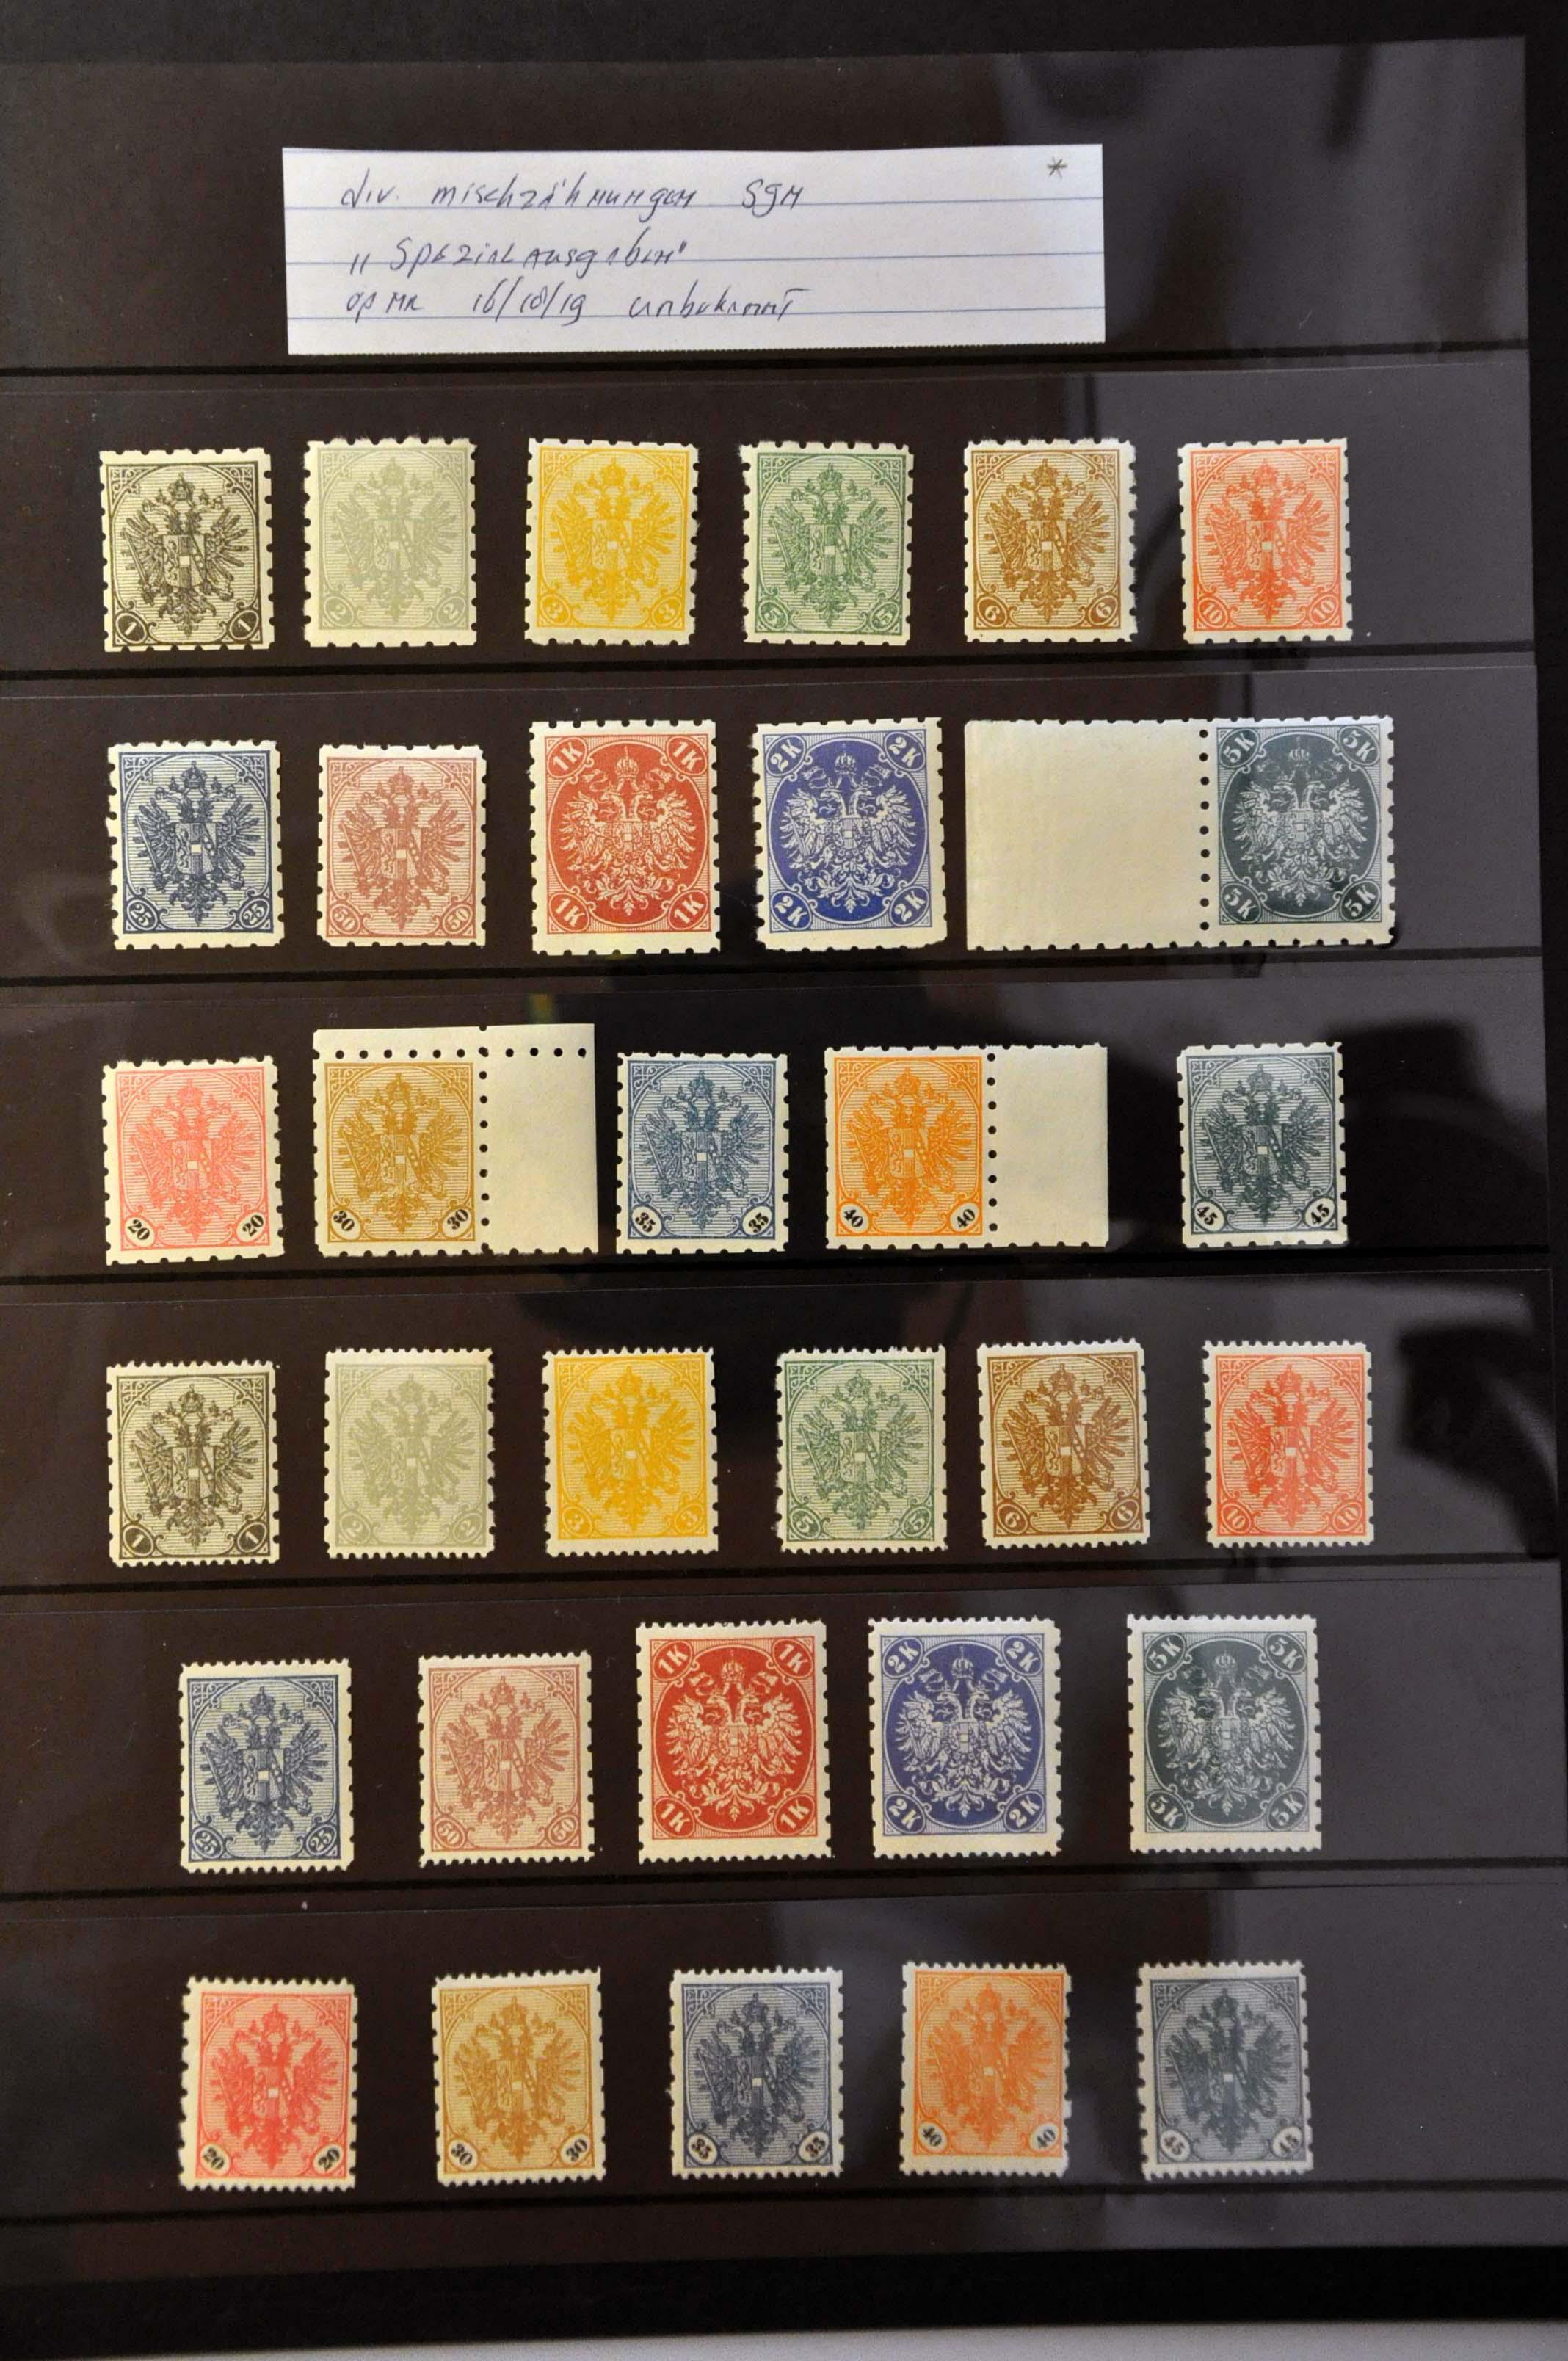 Lot 19 - Austria and former territories Bosnia and Herzegowina (Austrian) -  Corinphila Veilingen Auction 244 -Netherlands and former colonies, WW2 Postal History, Bosnia, German and British colonies, Egypt. - Day 1